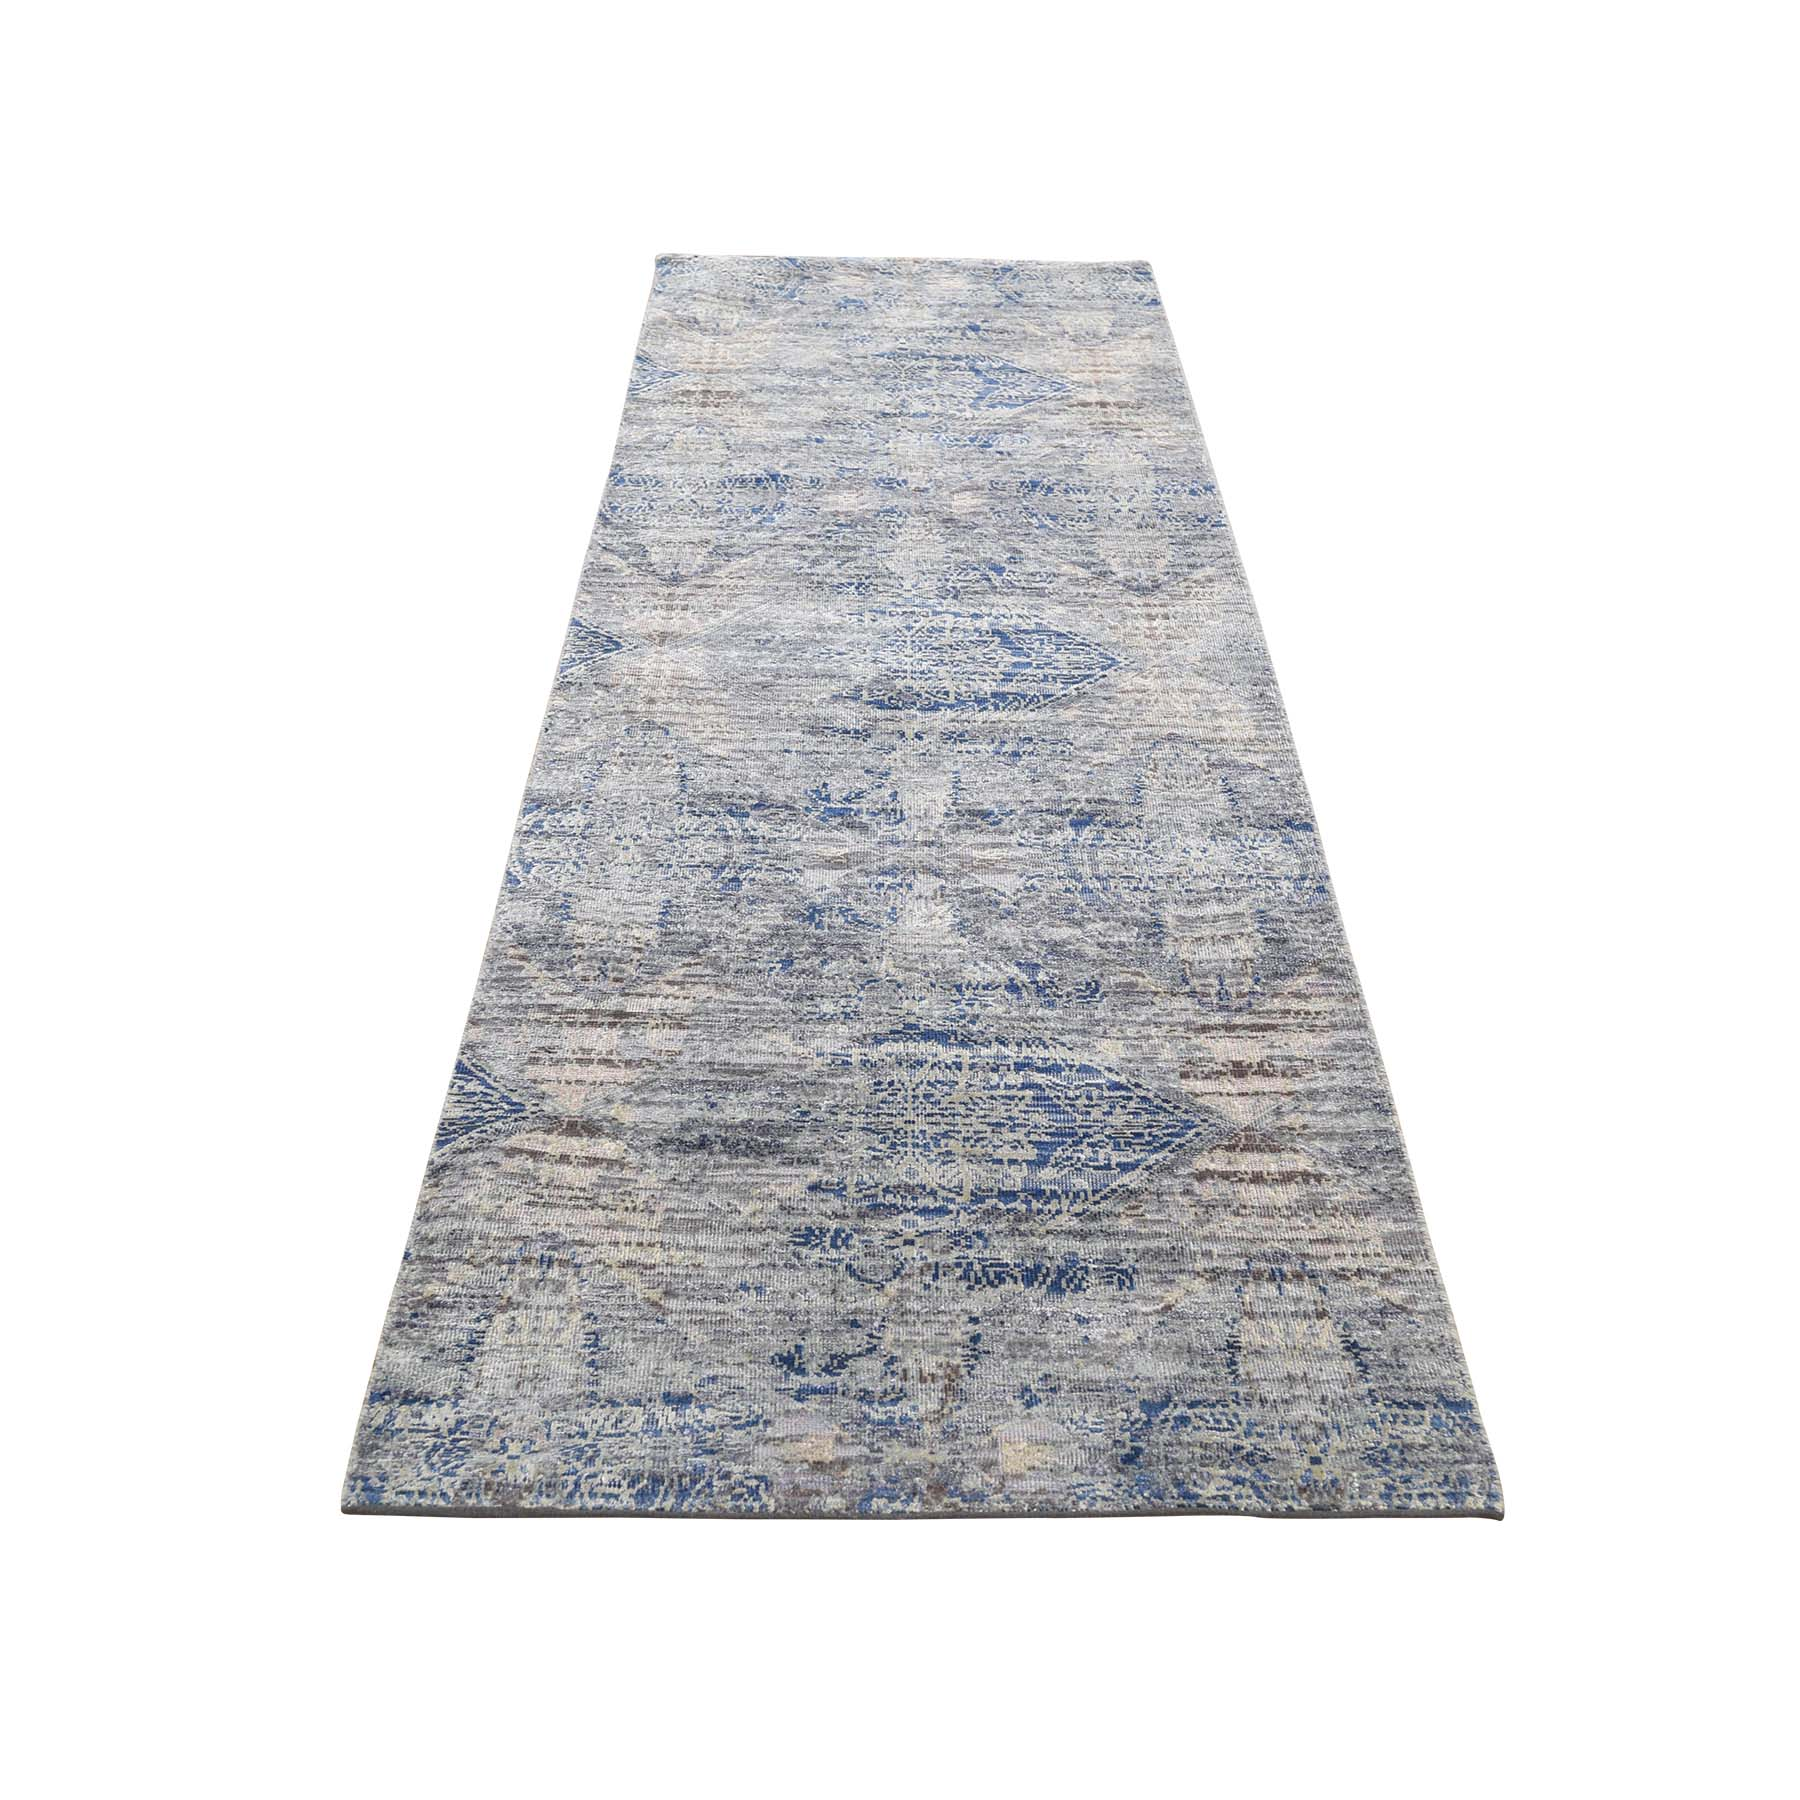 "2'5""x8'2"" ERASED ROSSETS,Silk With Textured Wool Denim Blue Runner Hand-Knotted Oriental Rug"